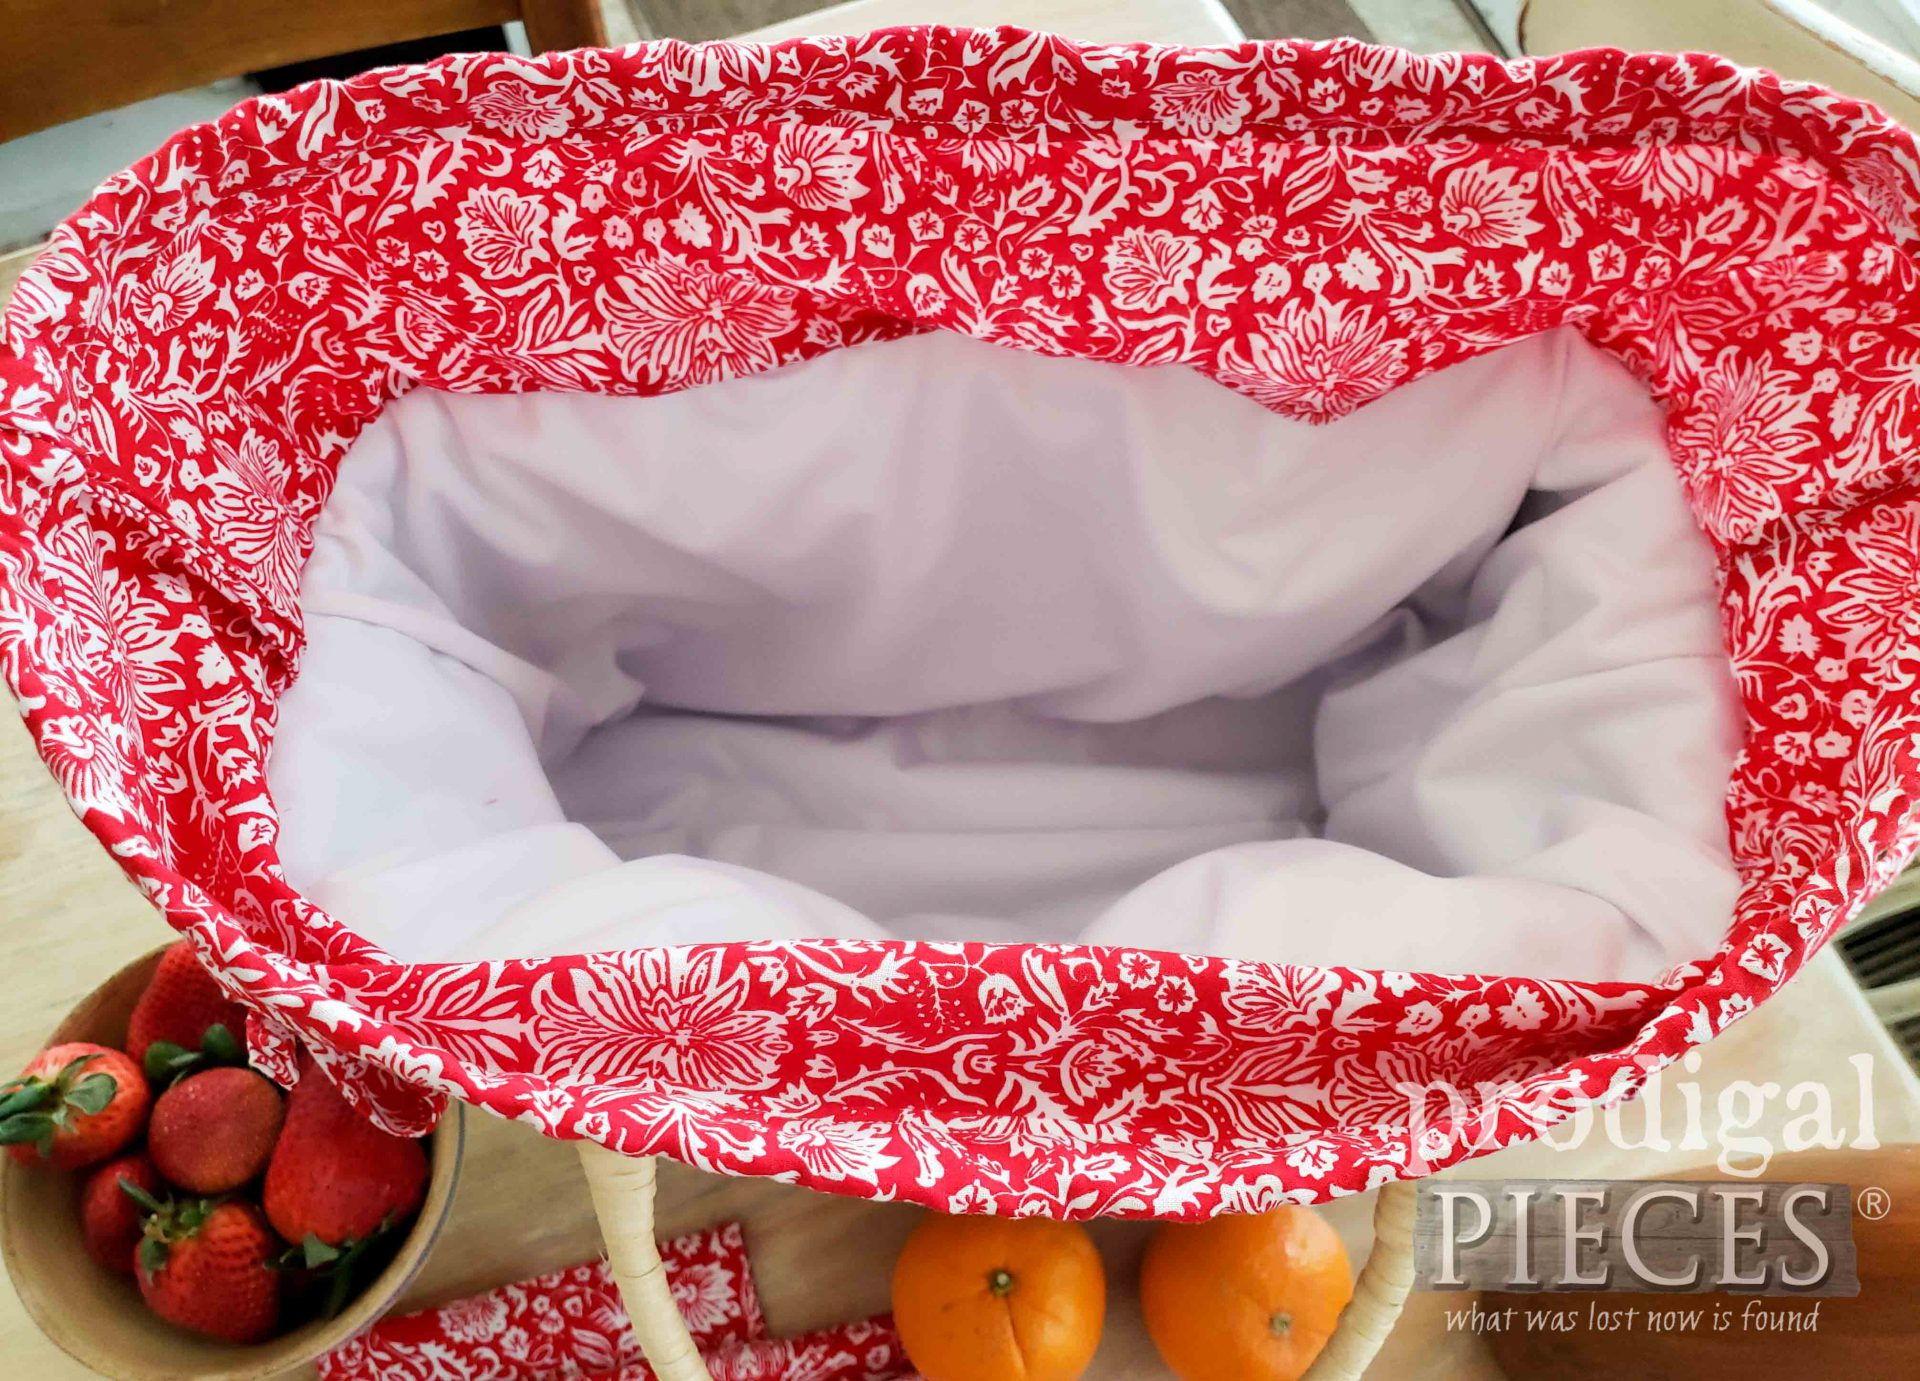 Inside DIY Insulated Picnic Basket with PUL lining | prodigalpieces.com #prodigalpieces #sewing #picnic #home #sewing